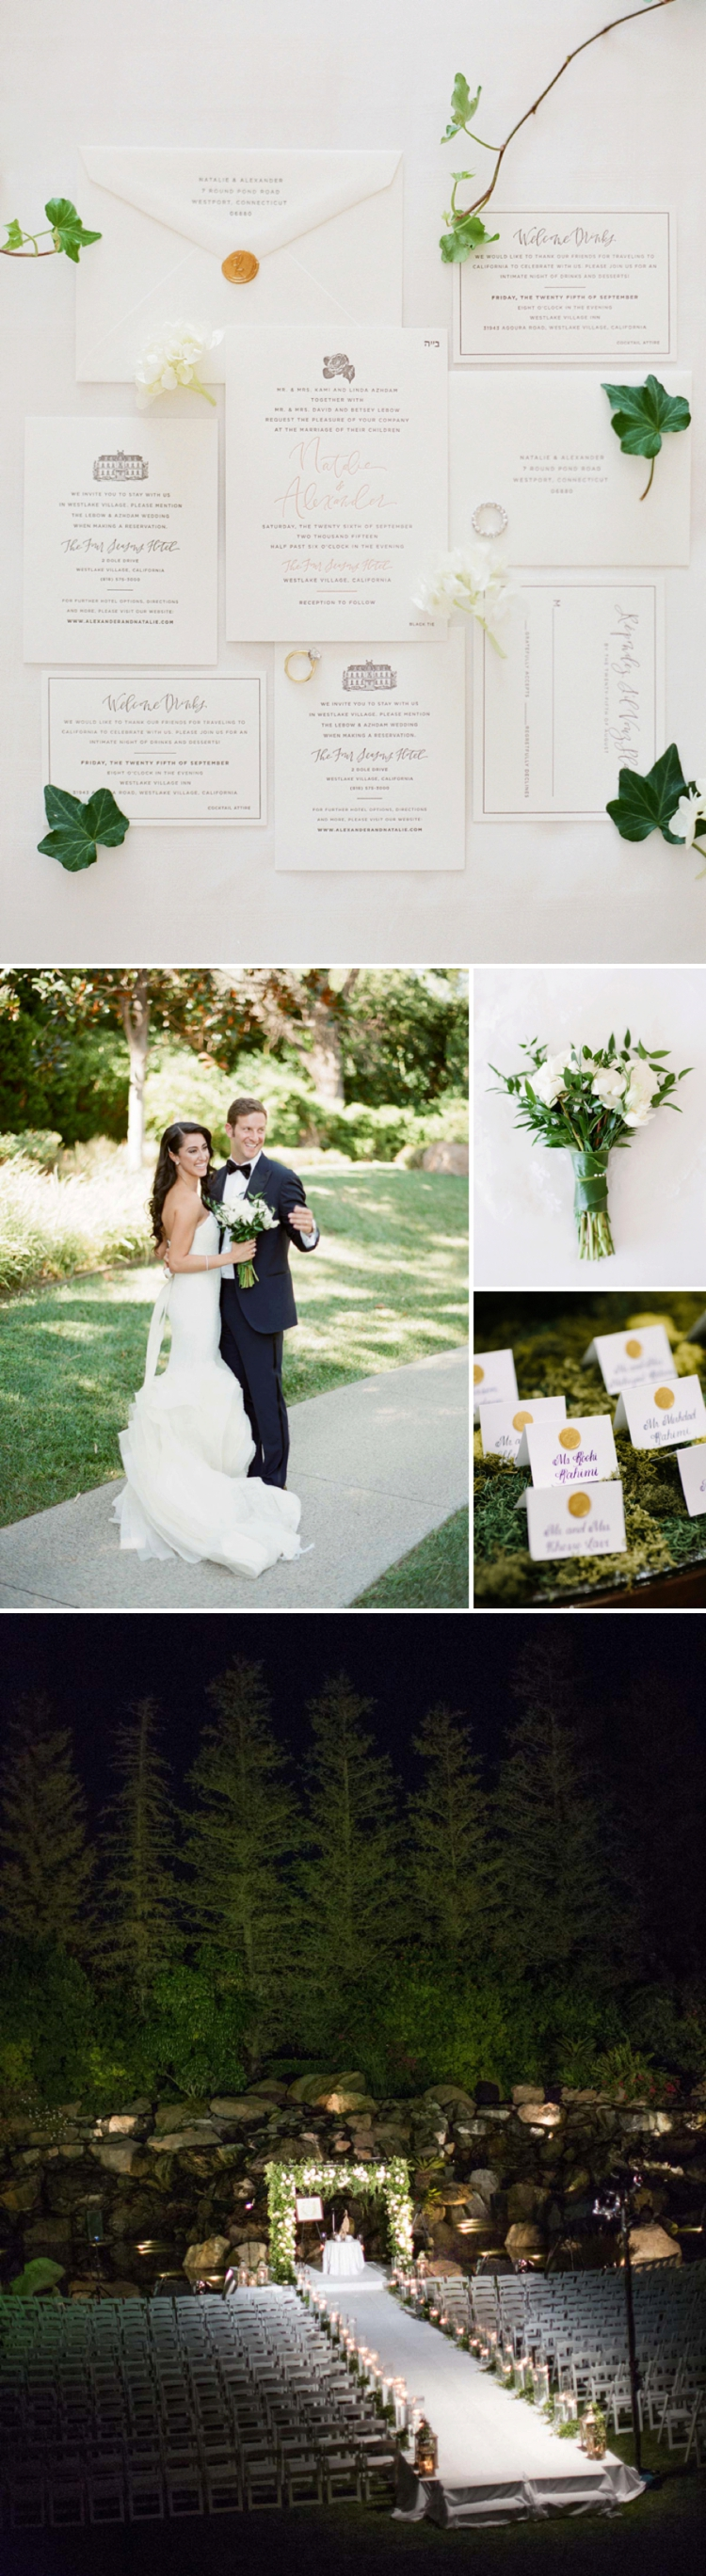 jewish-wedding-at-four-seasons-in-westlake-village-california_2